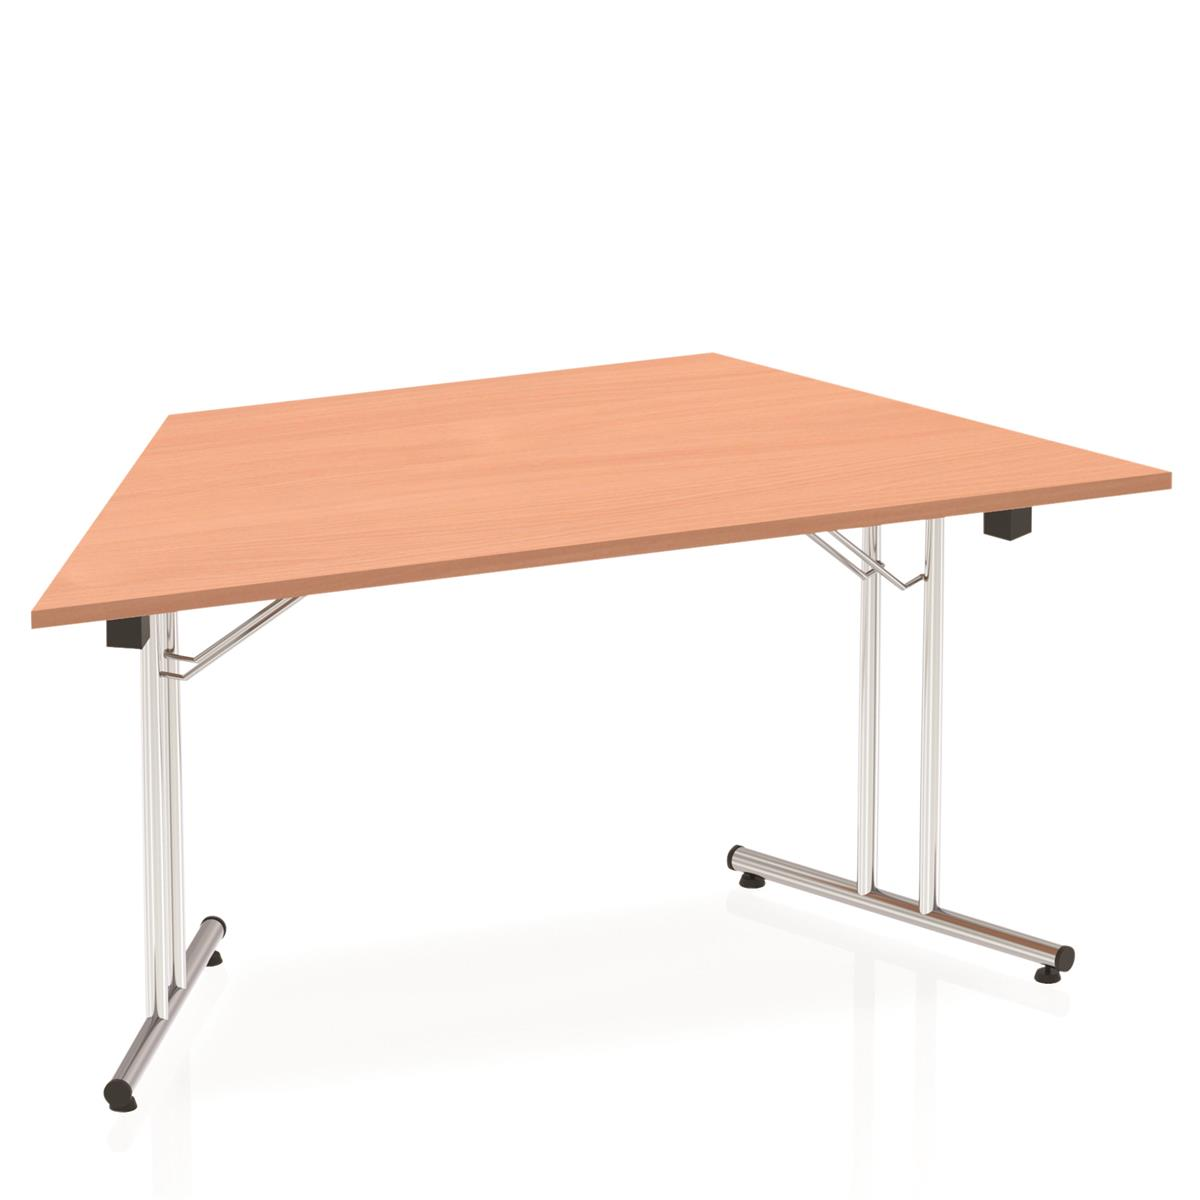 Image for Sonix Trapezium Folding Table I-Frame Leg 1600mm Beech